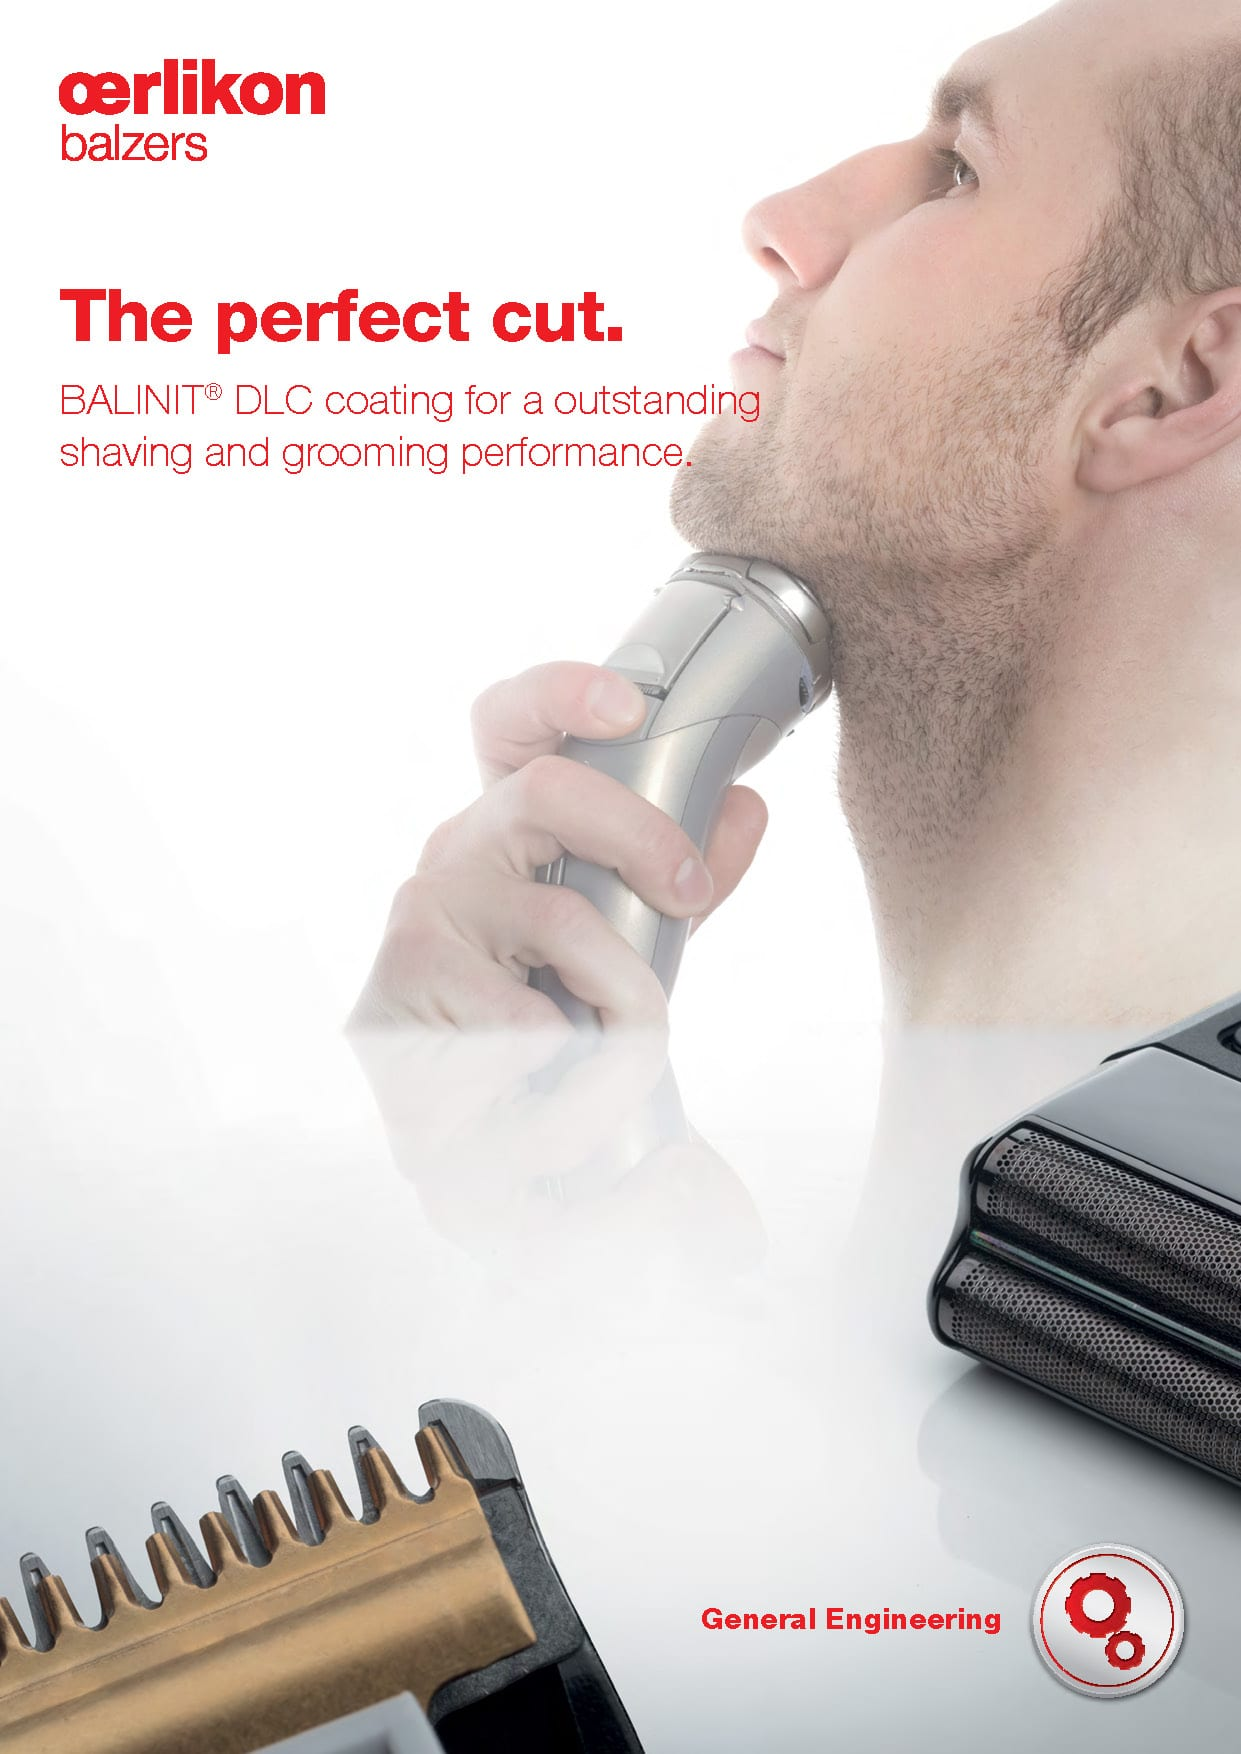 Shaver - The perfect cut